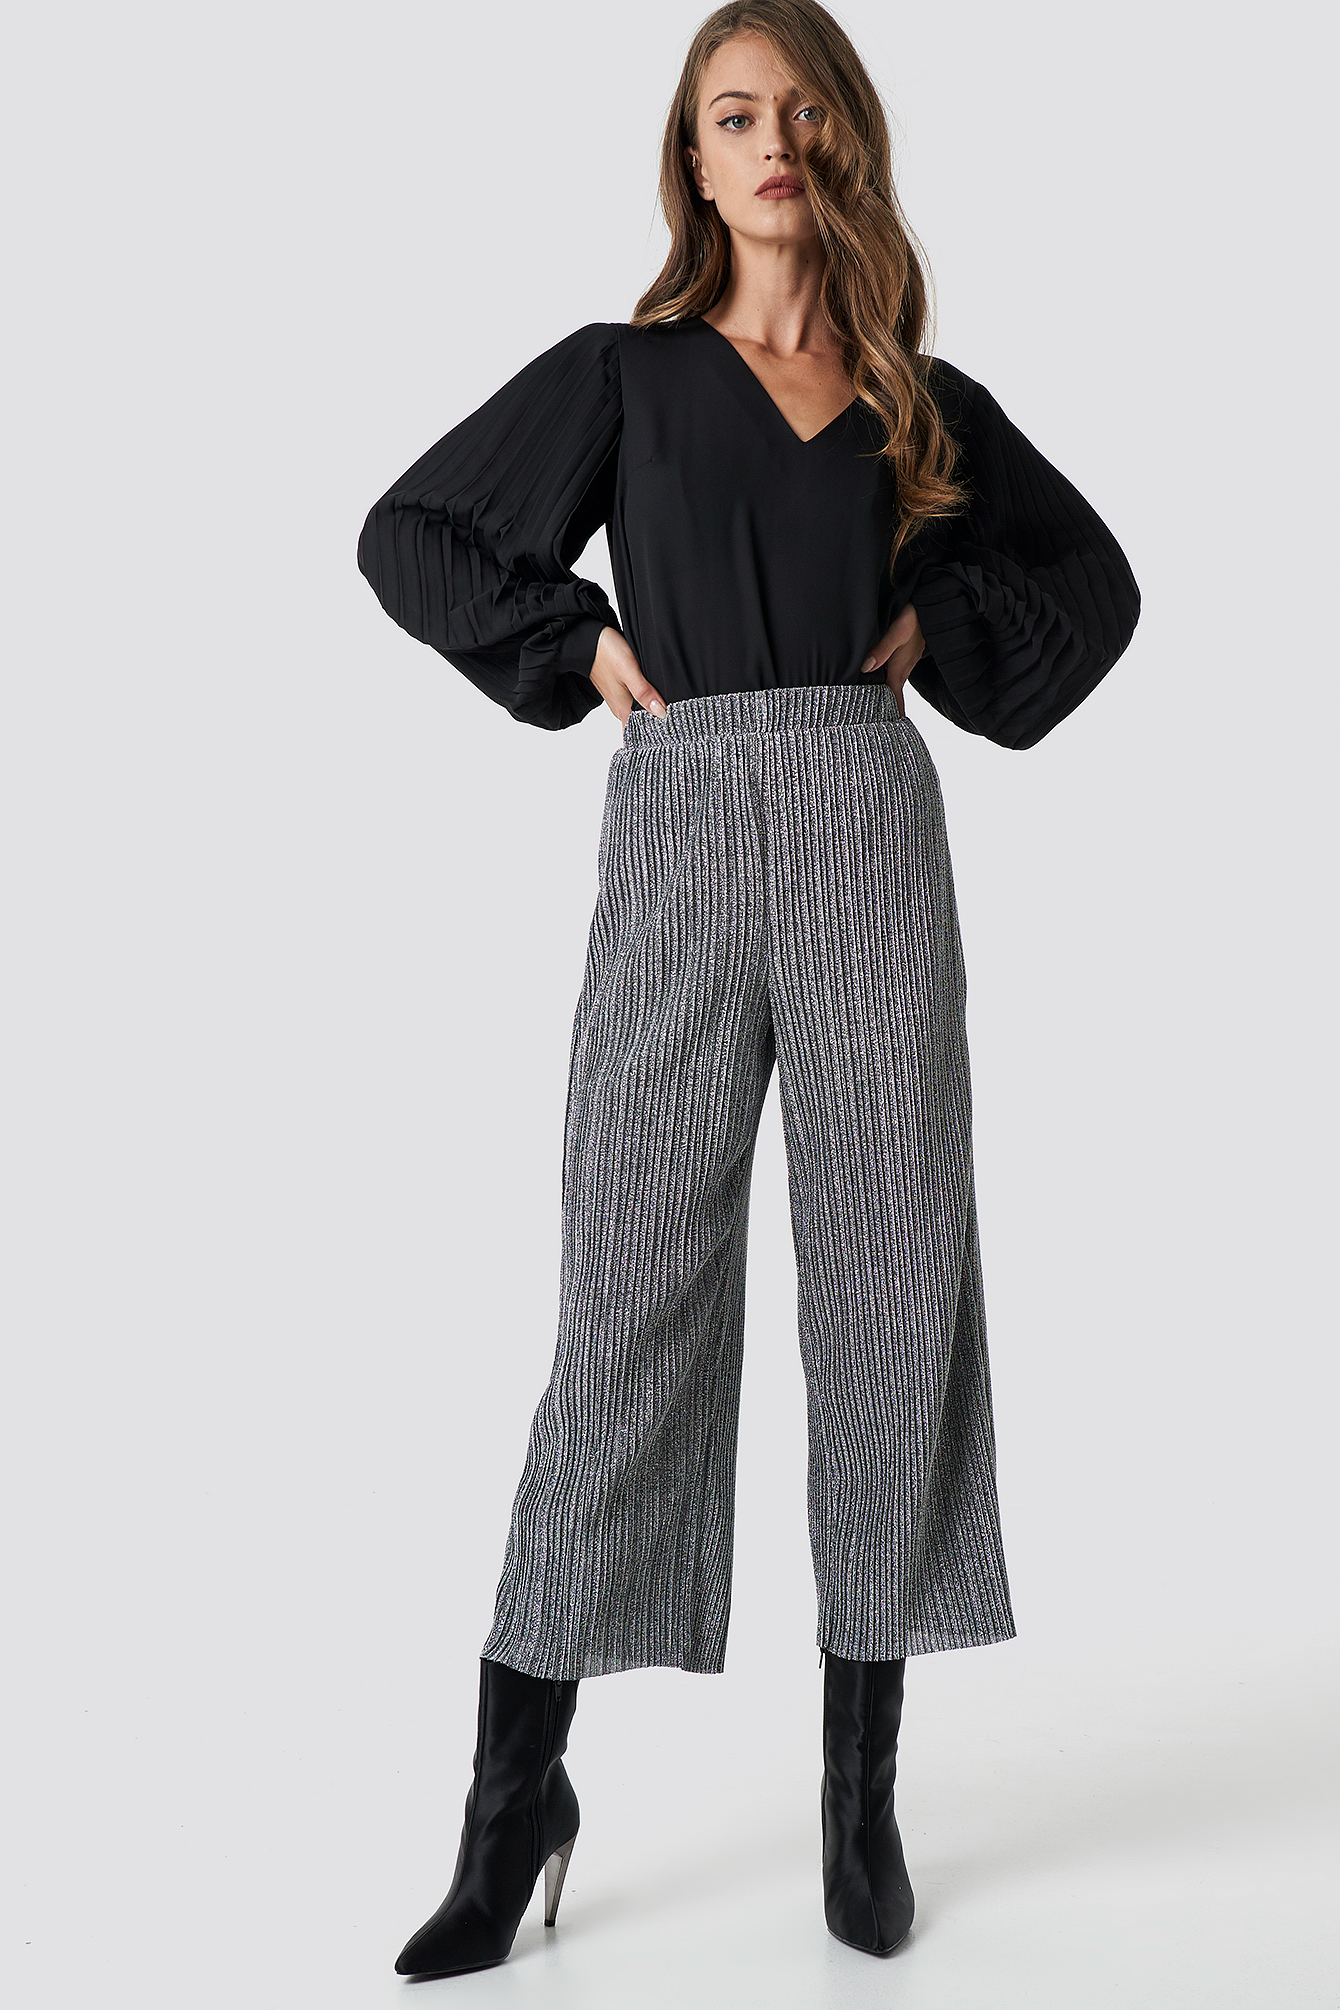 Culottes Glittery Glittery Culottes Na Pleated Silver Silver Pleated Na xY4q7pnwRz